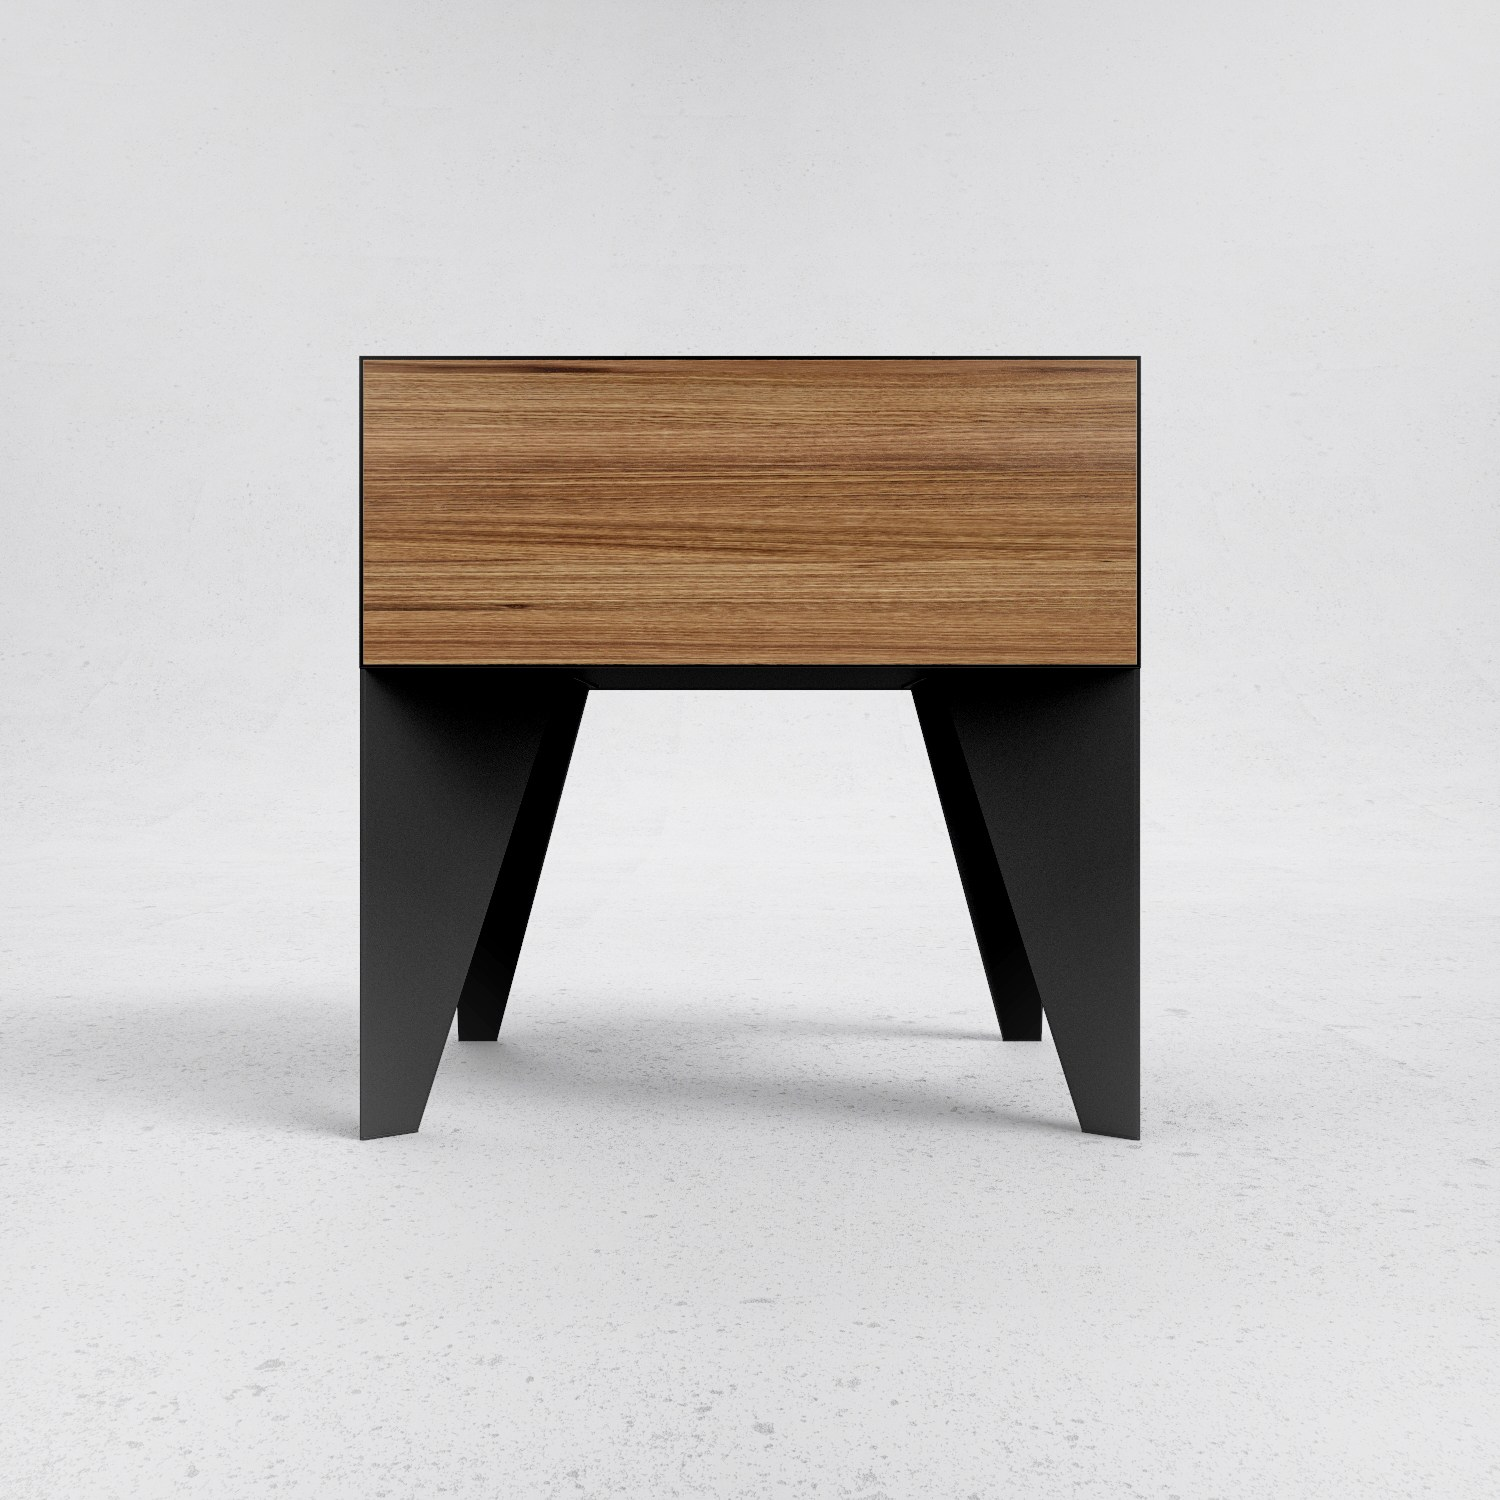 table de nuit en acier et bois e11 by odesd2 design nikita bukoros. Black Bedroom Furniture Sets. Home Design Ideas